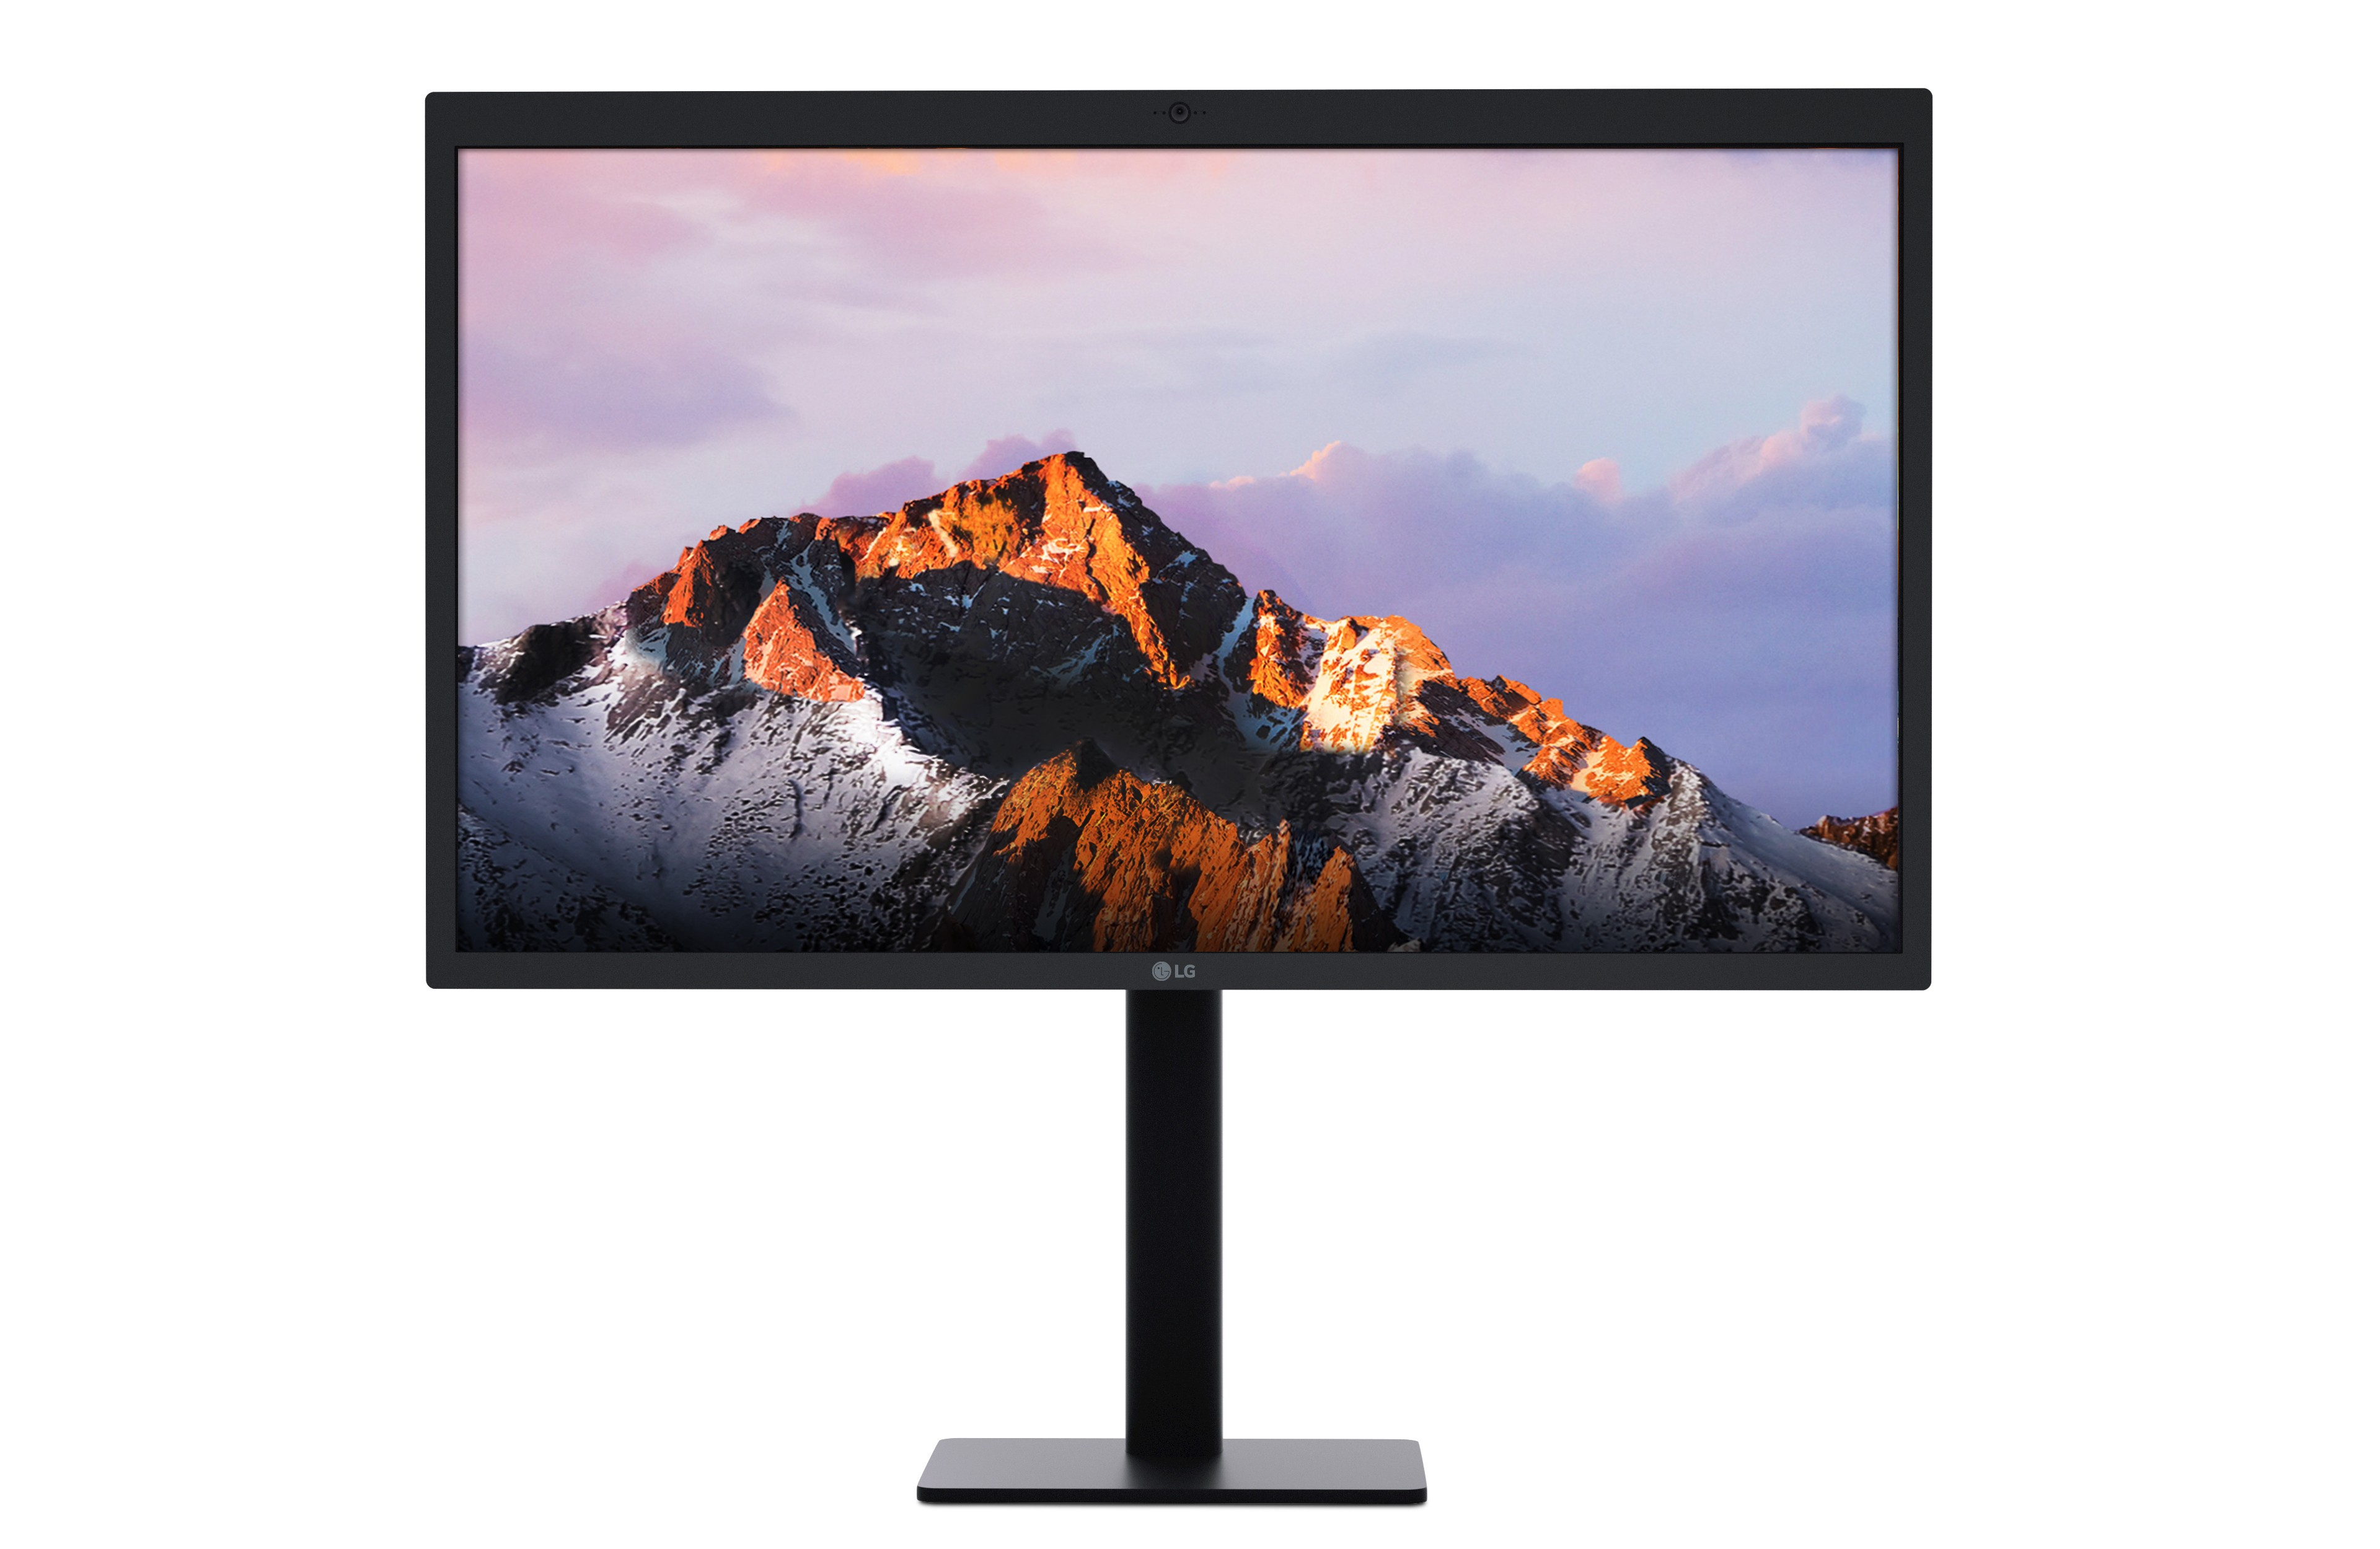 lg ultrafine 4k display. lg ultrafine 5k/4k displays designed for the ultimate mac user experience   newsroom lg ultrafine 4k display l